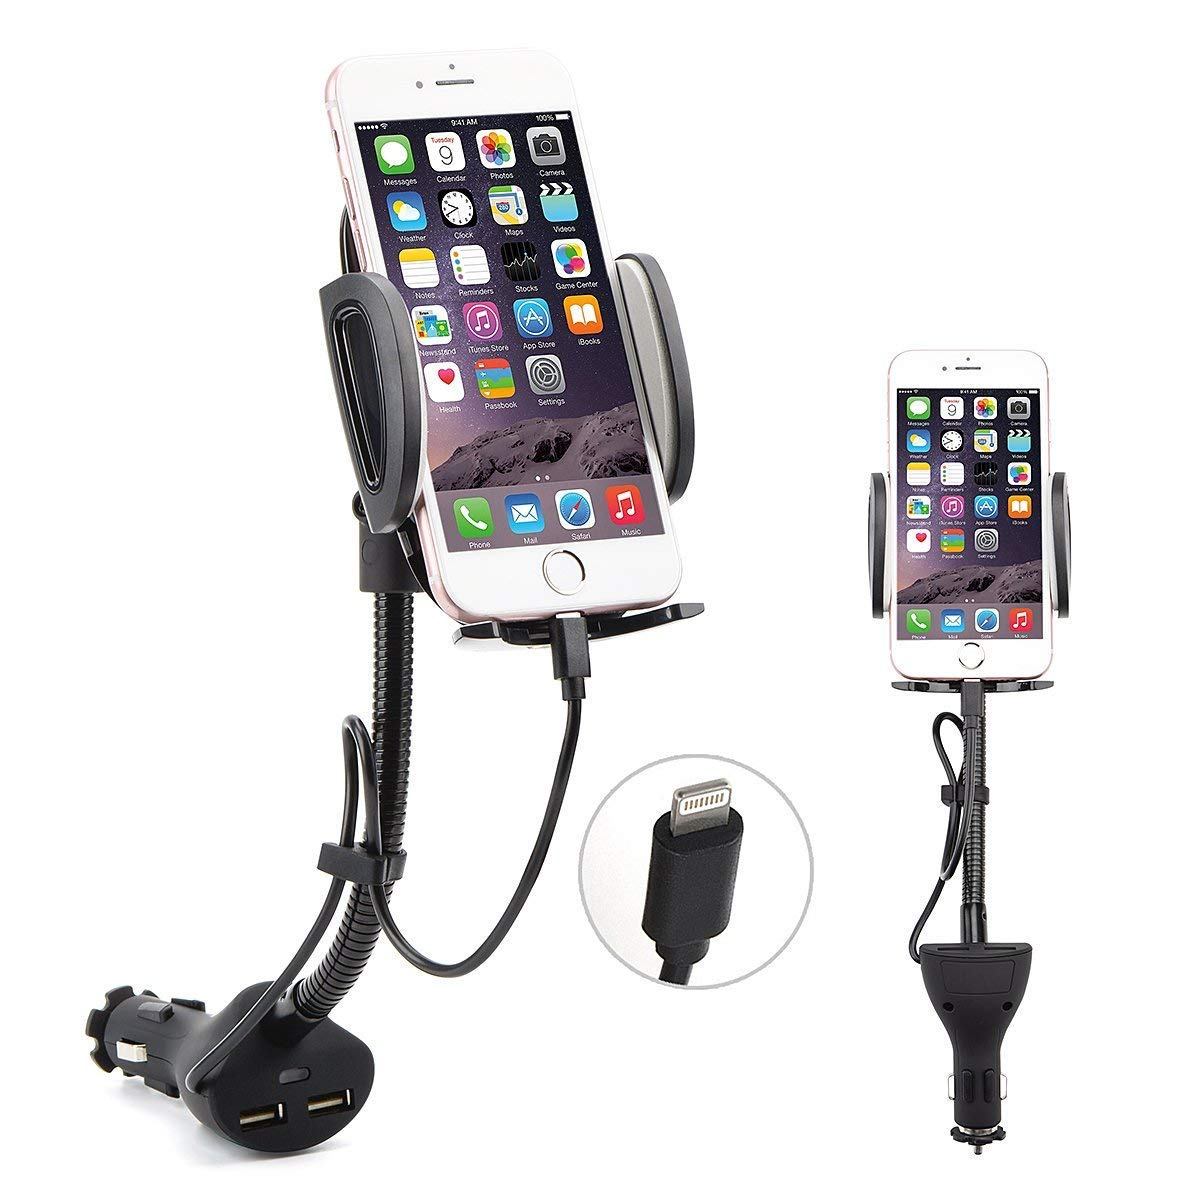 [Upgraded] AUOPLUS Cigarette Lighter Phone Holder Car Mount Charger 3.1A Dual USB Ports with Built-in Charging Cord Compatible with iPhone